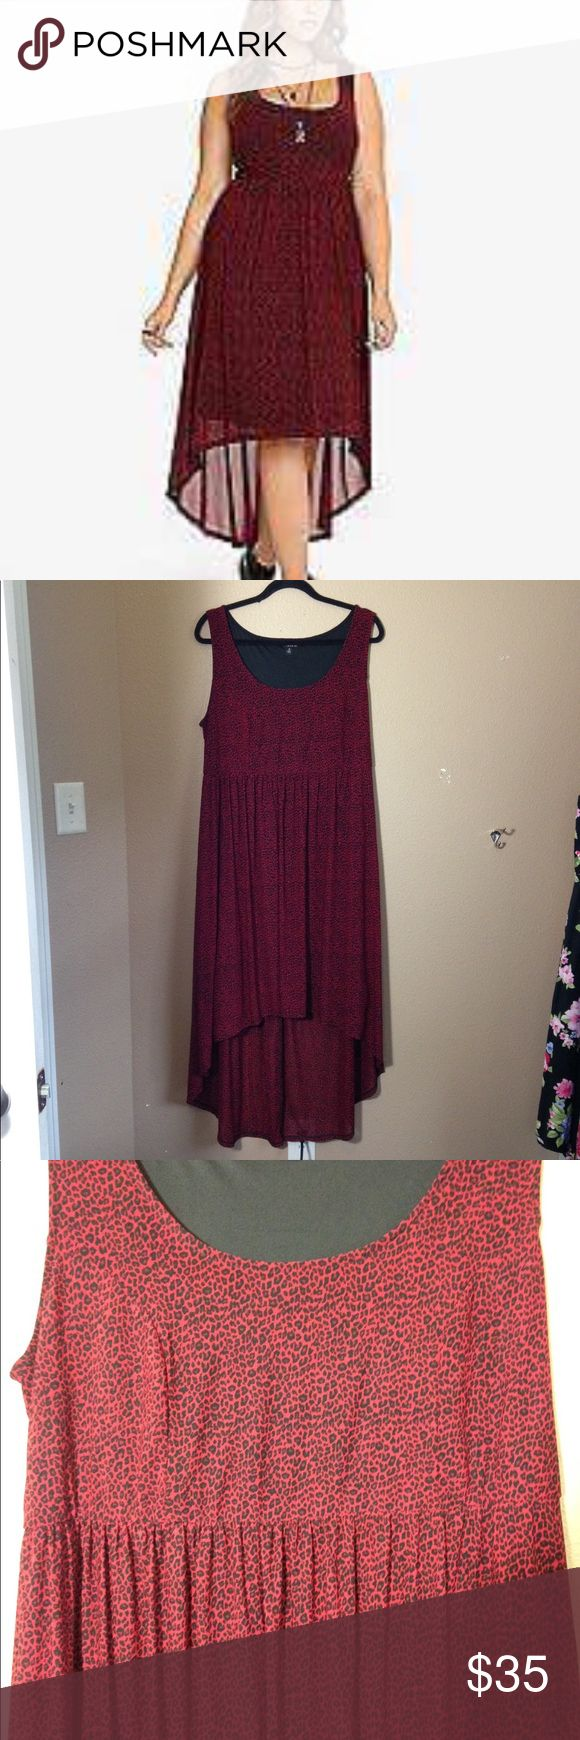 TORRID cheetah print Hi low dress Torrid red and black cheetah print hi low dress. Great condition torrid Dresses